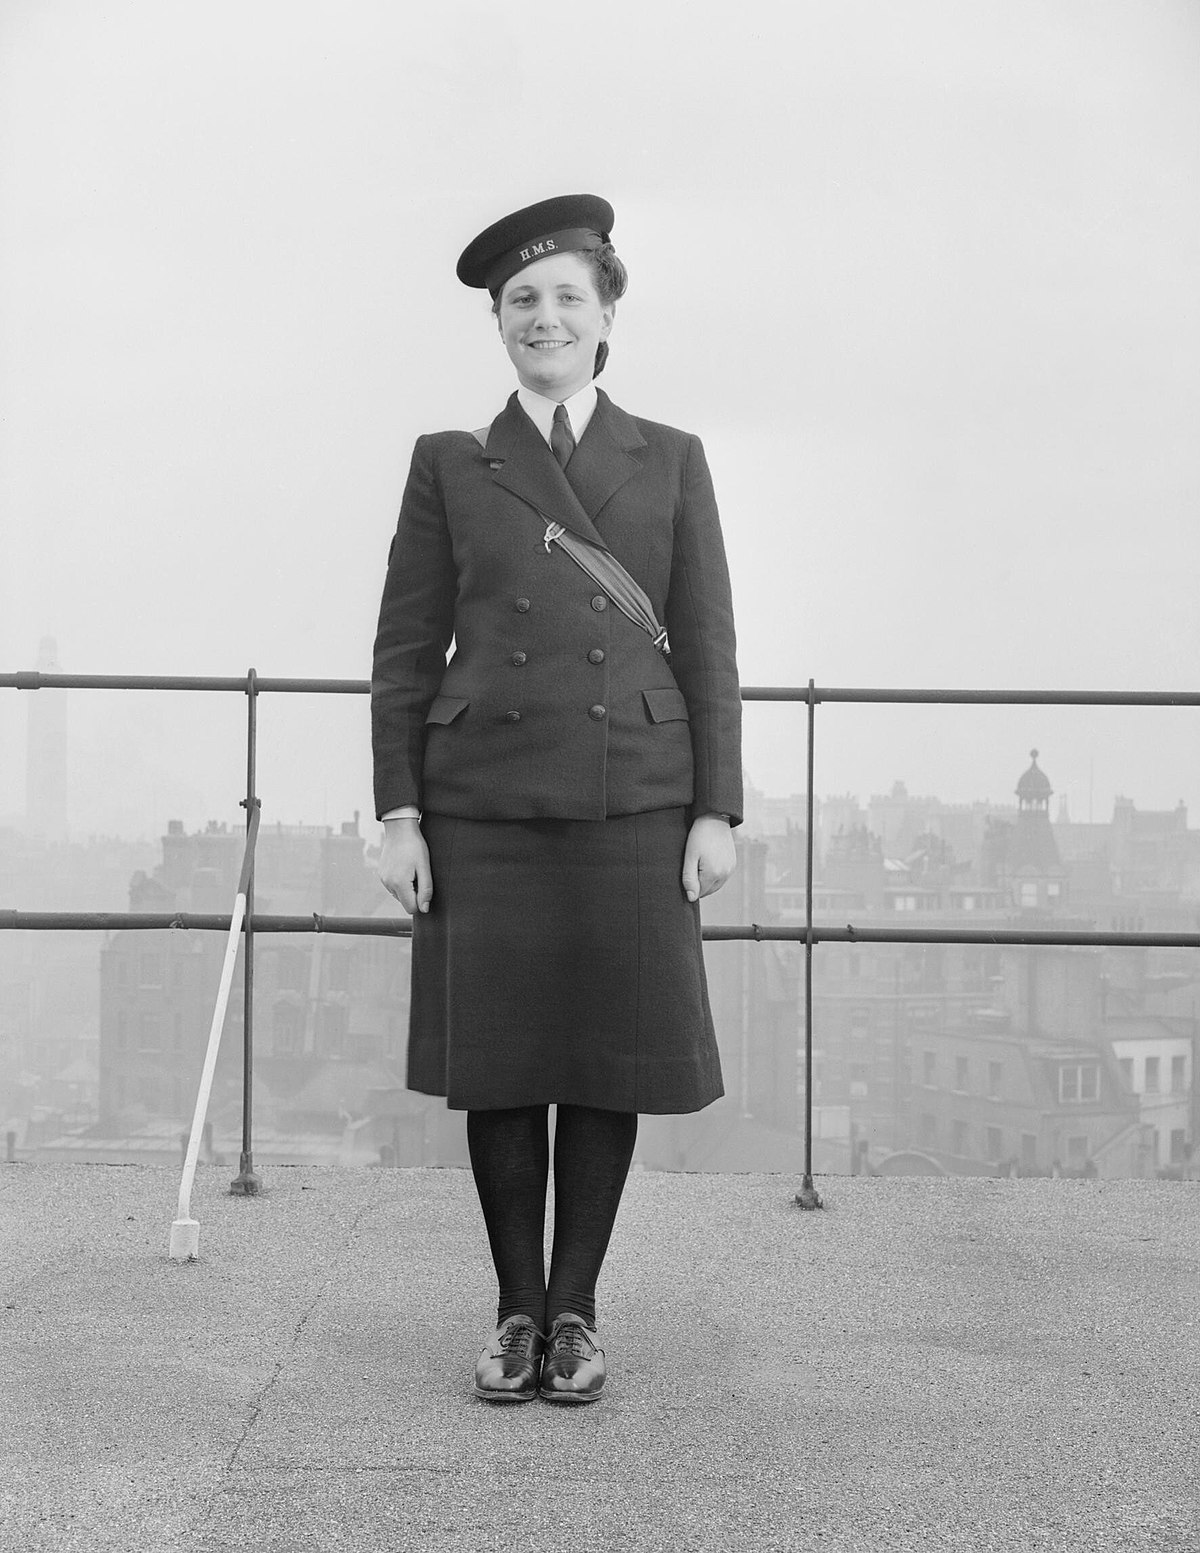 what role did women play in ww2